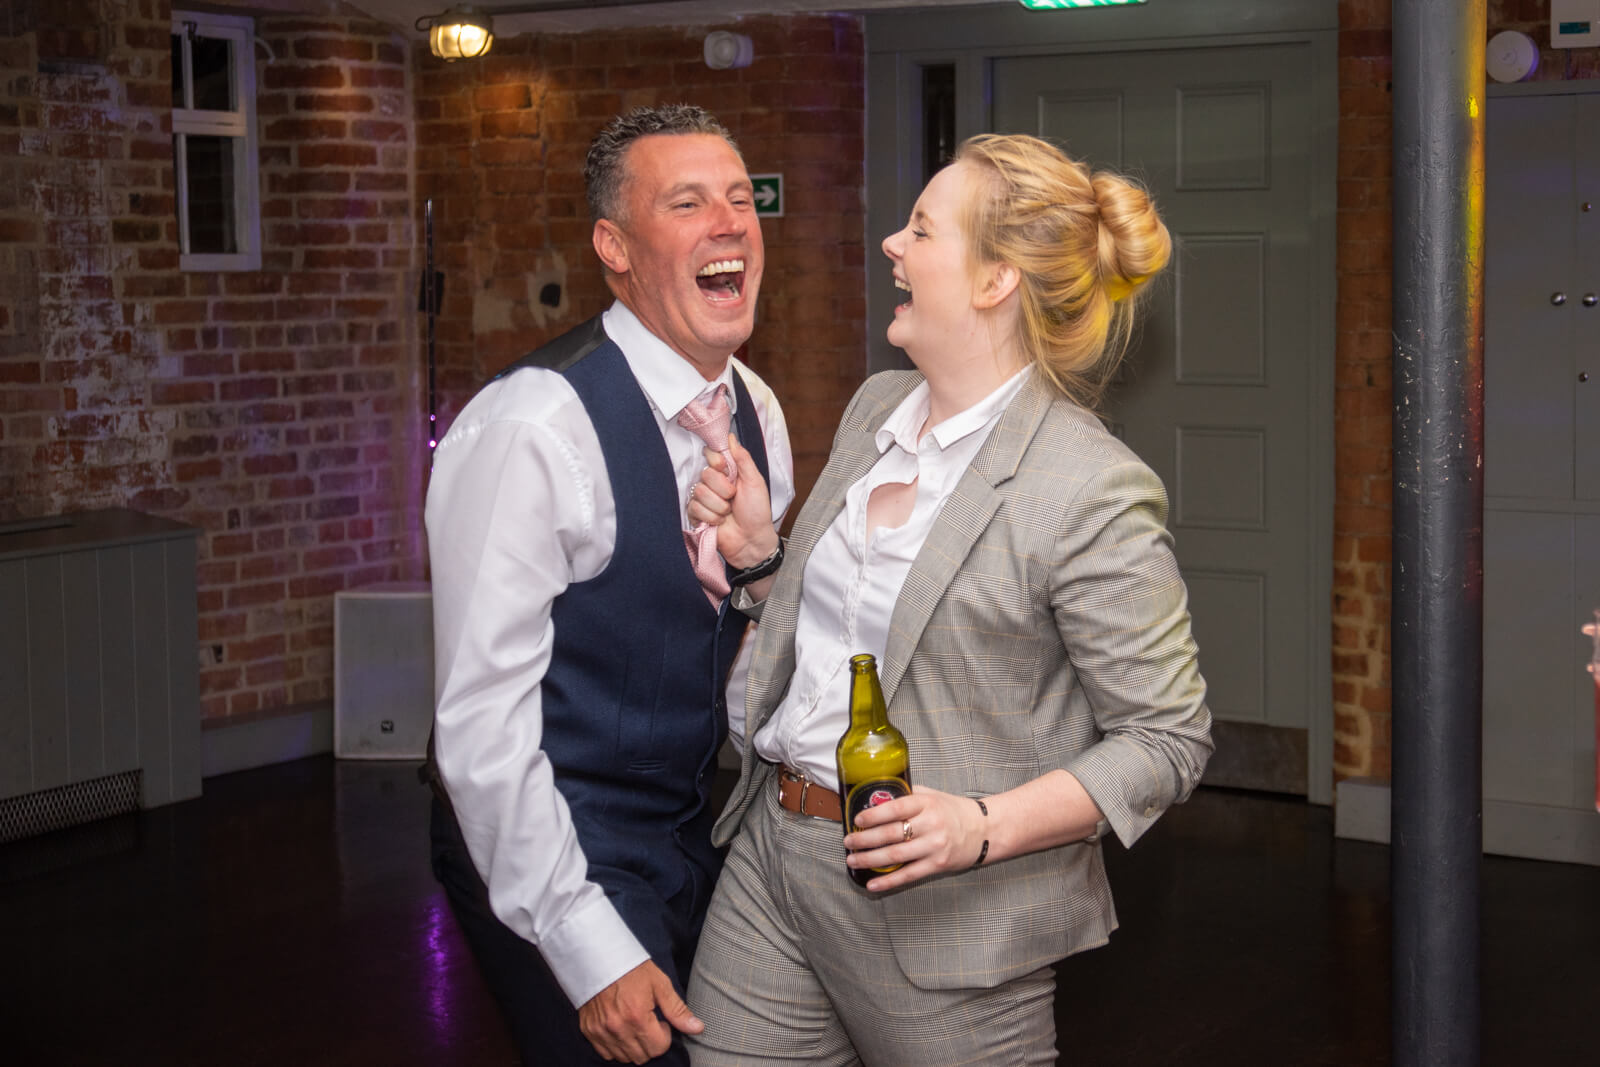 Wedding guests laugh together as one grabs the other by the tie